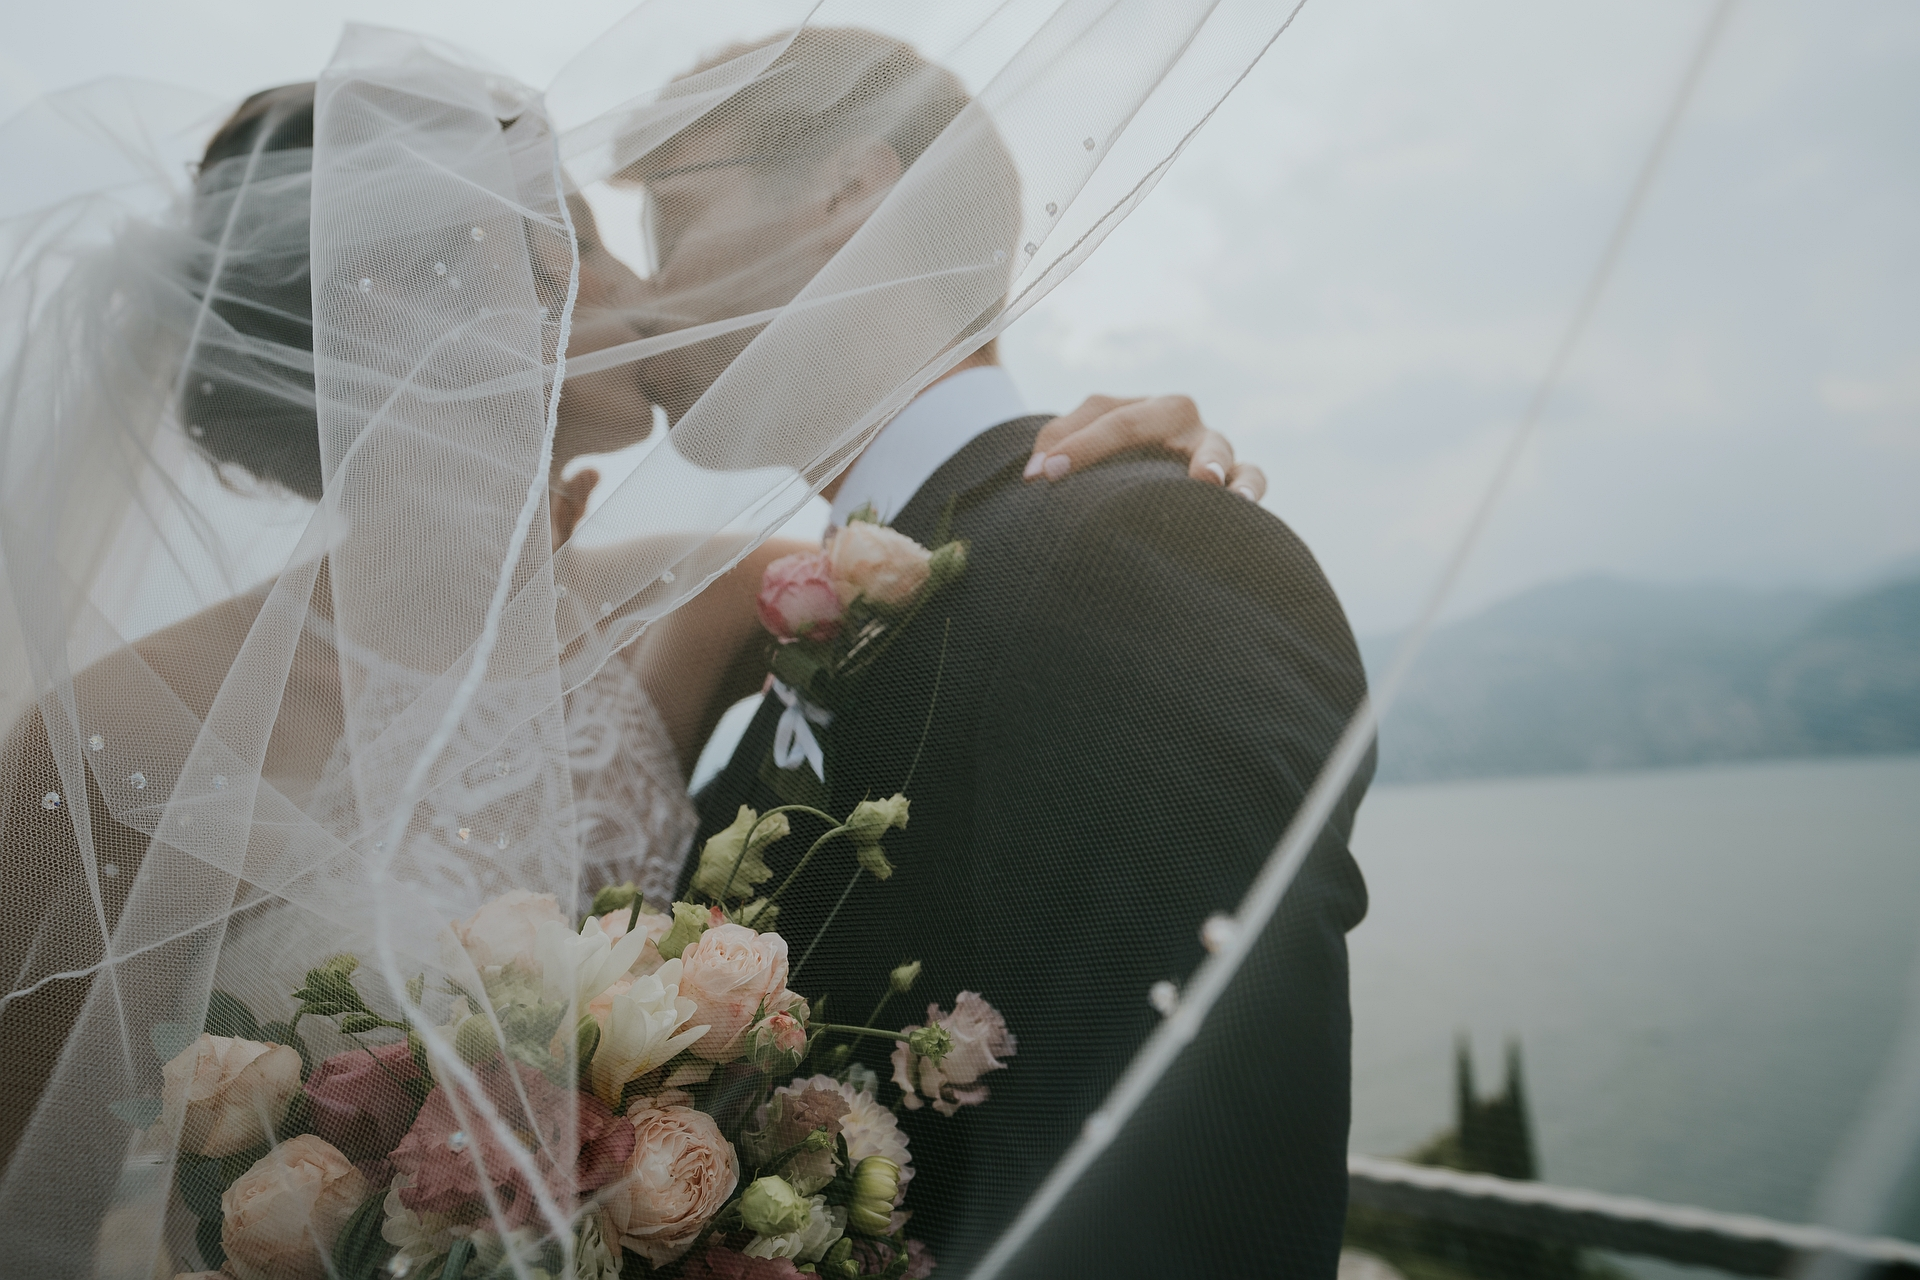 Italy Castle Elopement Ceremony Kissing Couple Photo | A portrait of the bride and groom